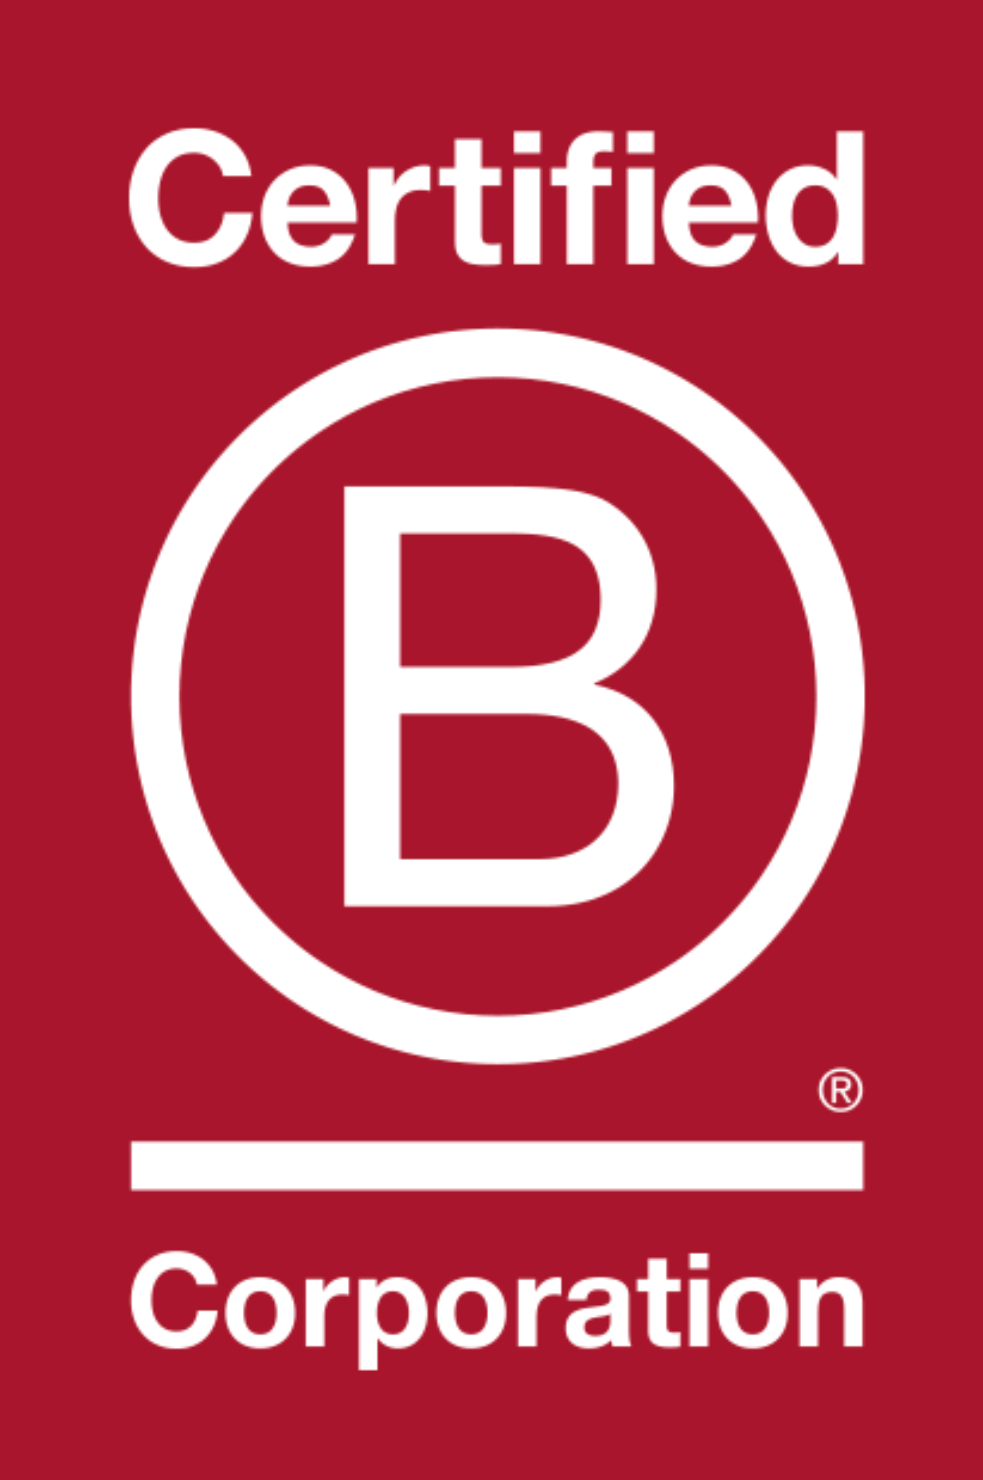 BCorp_red_Logo_Conscious_Company-1 copia.png